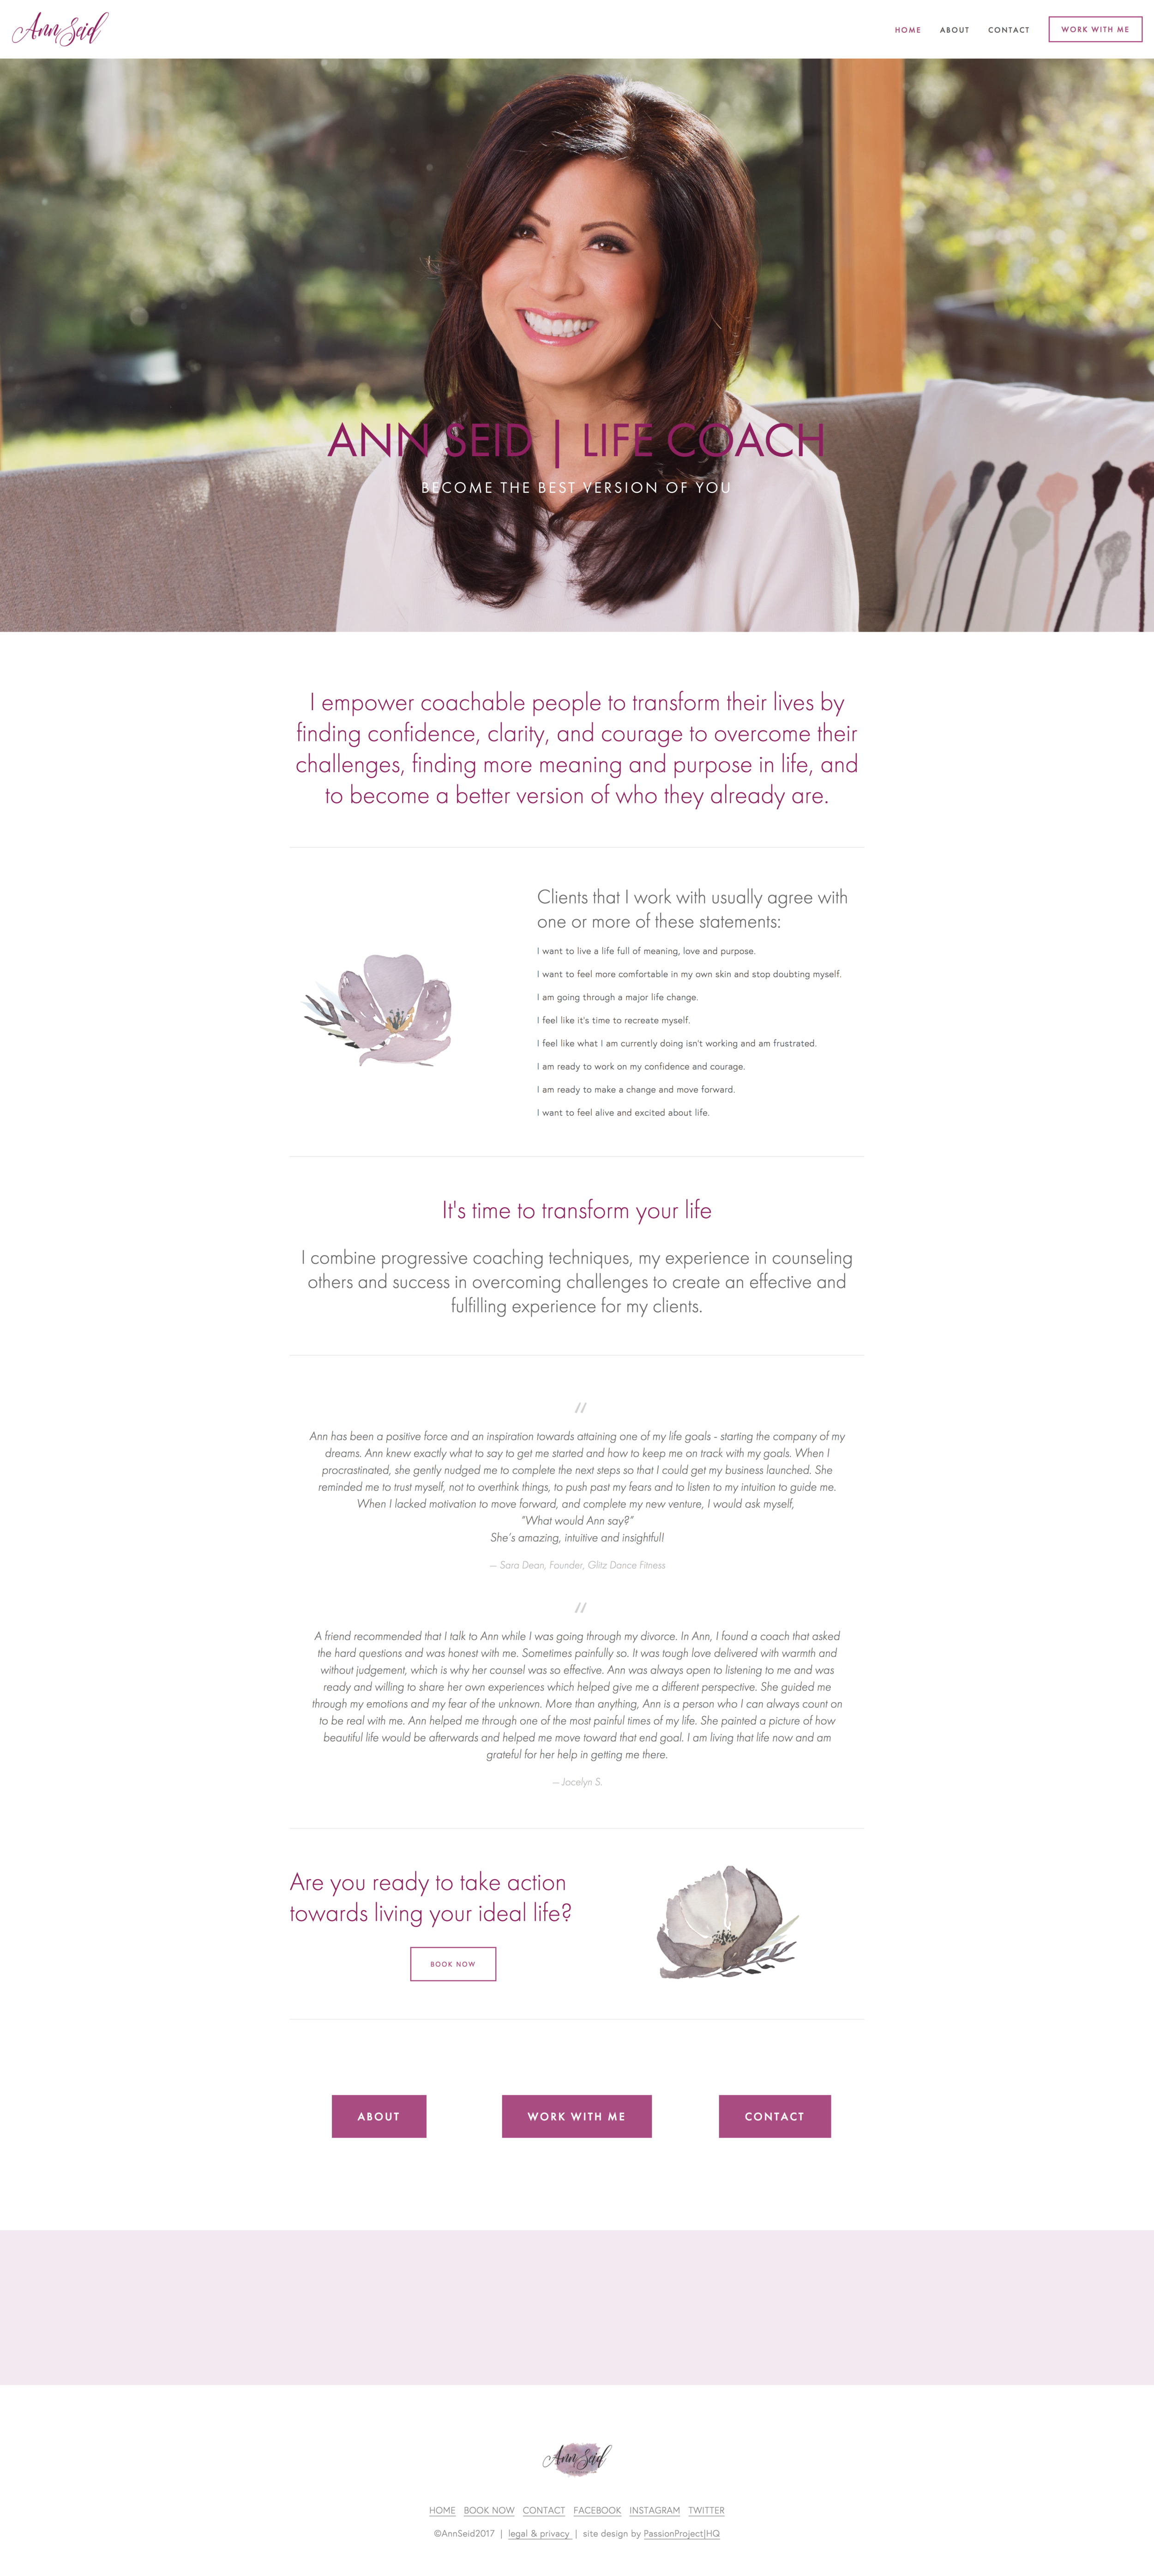 nn Seid Passion Project HQ branding logo website Kimberly Saquing brands for creatives websites for life coaches San Francisco Bay Area .png